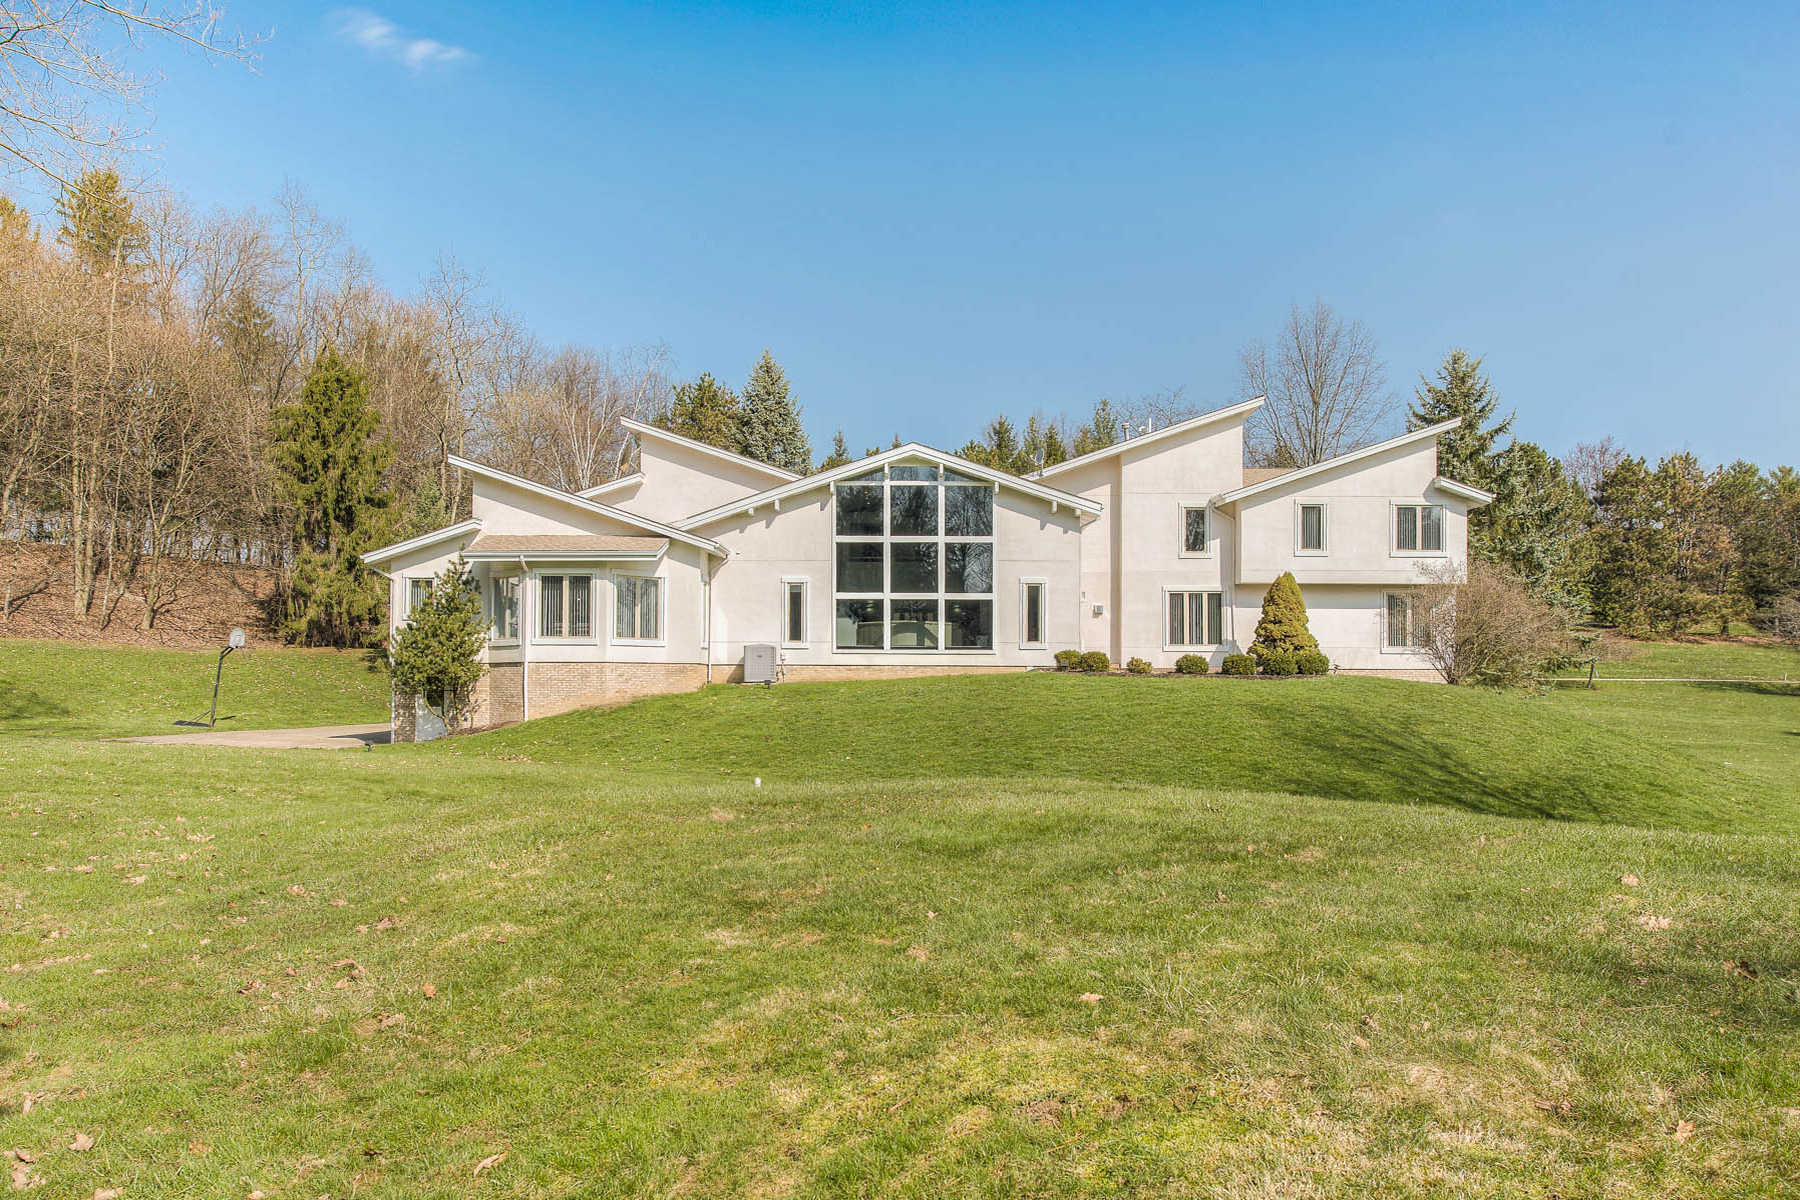 Single Family Homes for Sale at Contemporary Style and Class in Sewickley Heights 102 Fair Acres Drive, Sewickley, Pennsylvania 15143 United States